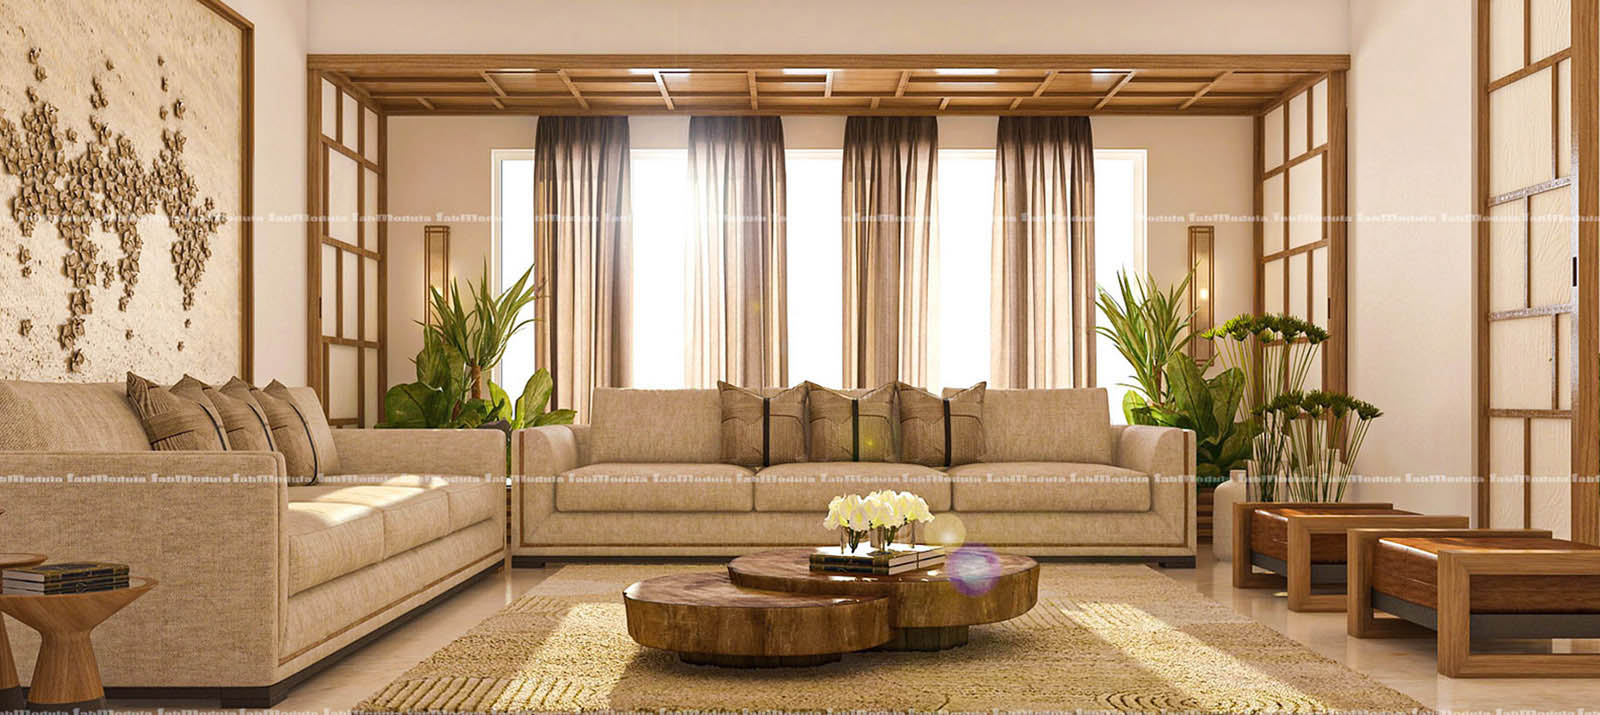 Fabmodula interior designers bangalore best interior design for Best interior decorators